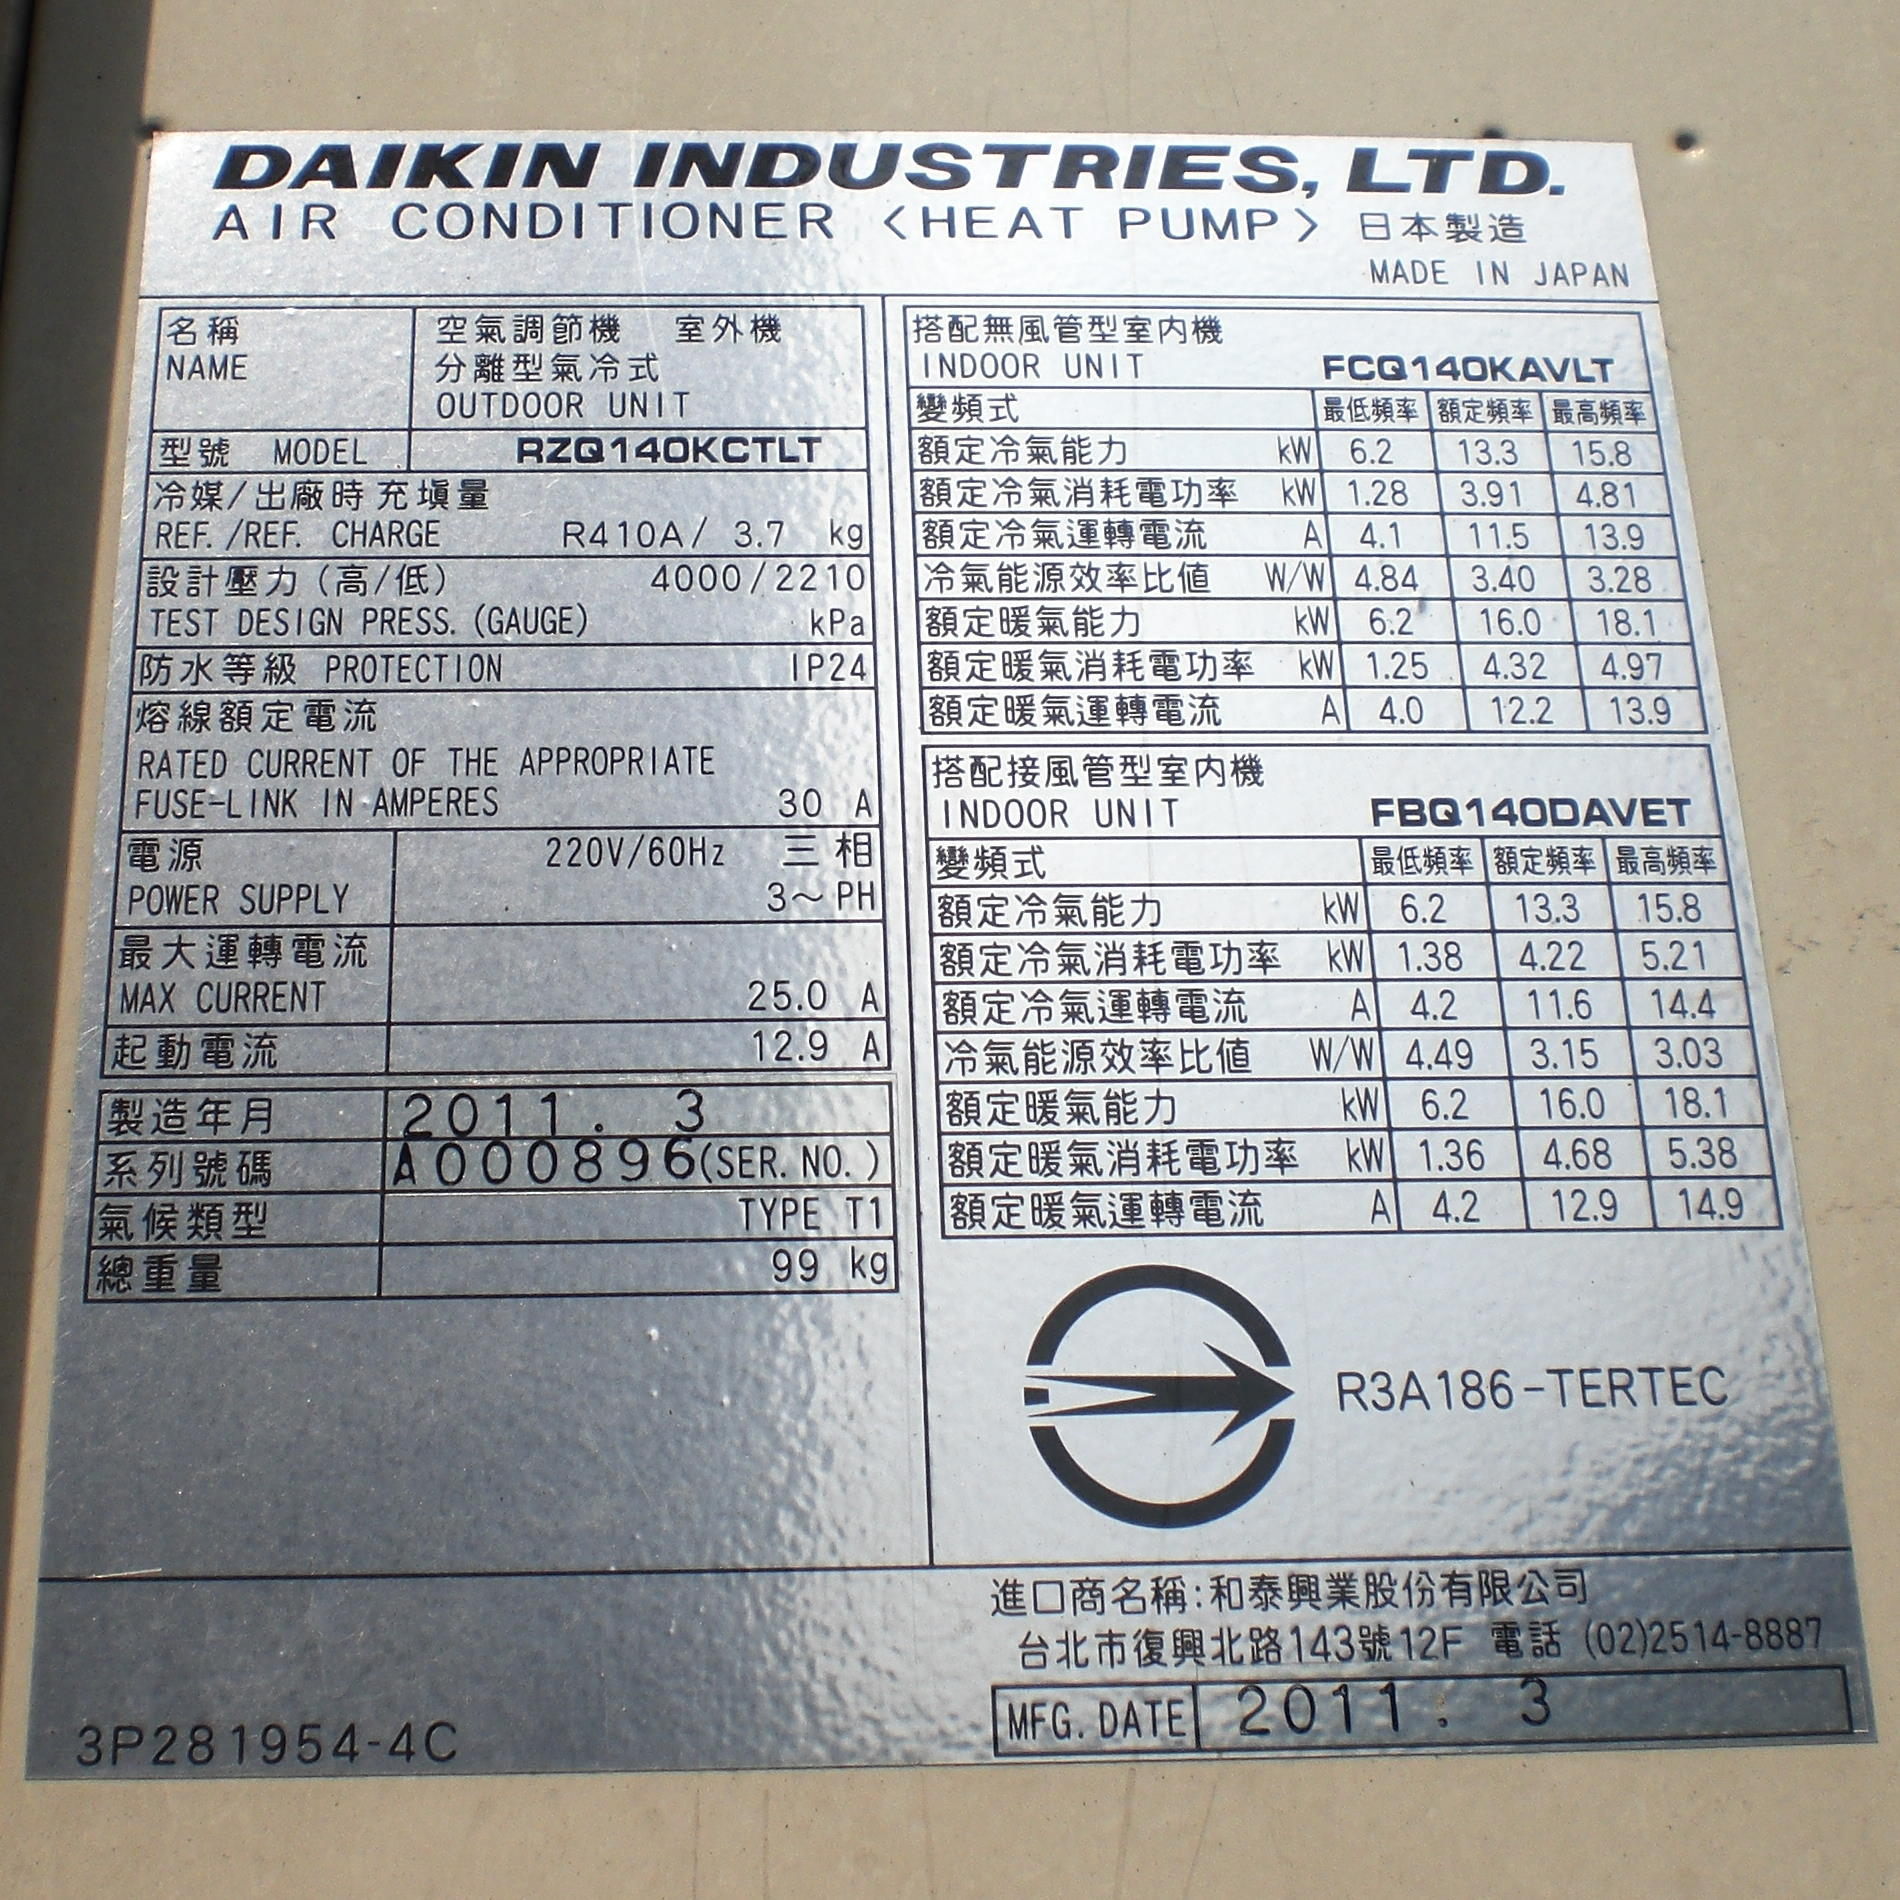 What is the history of Daikin Industries?